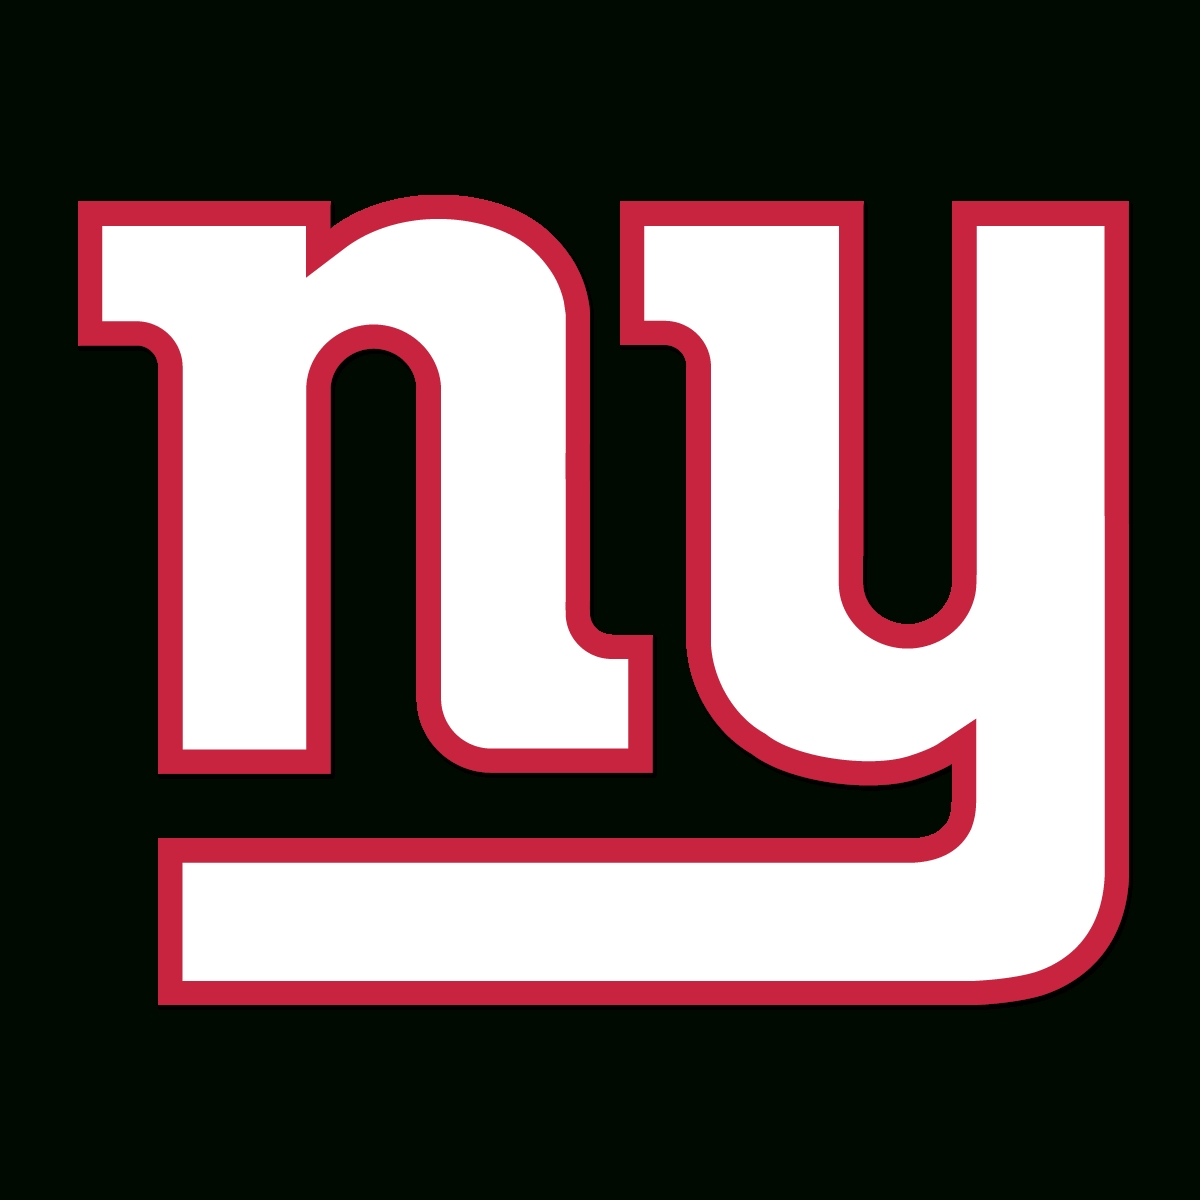 giants | the official website of the new york giants